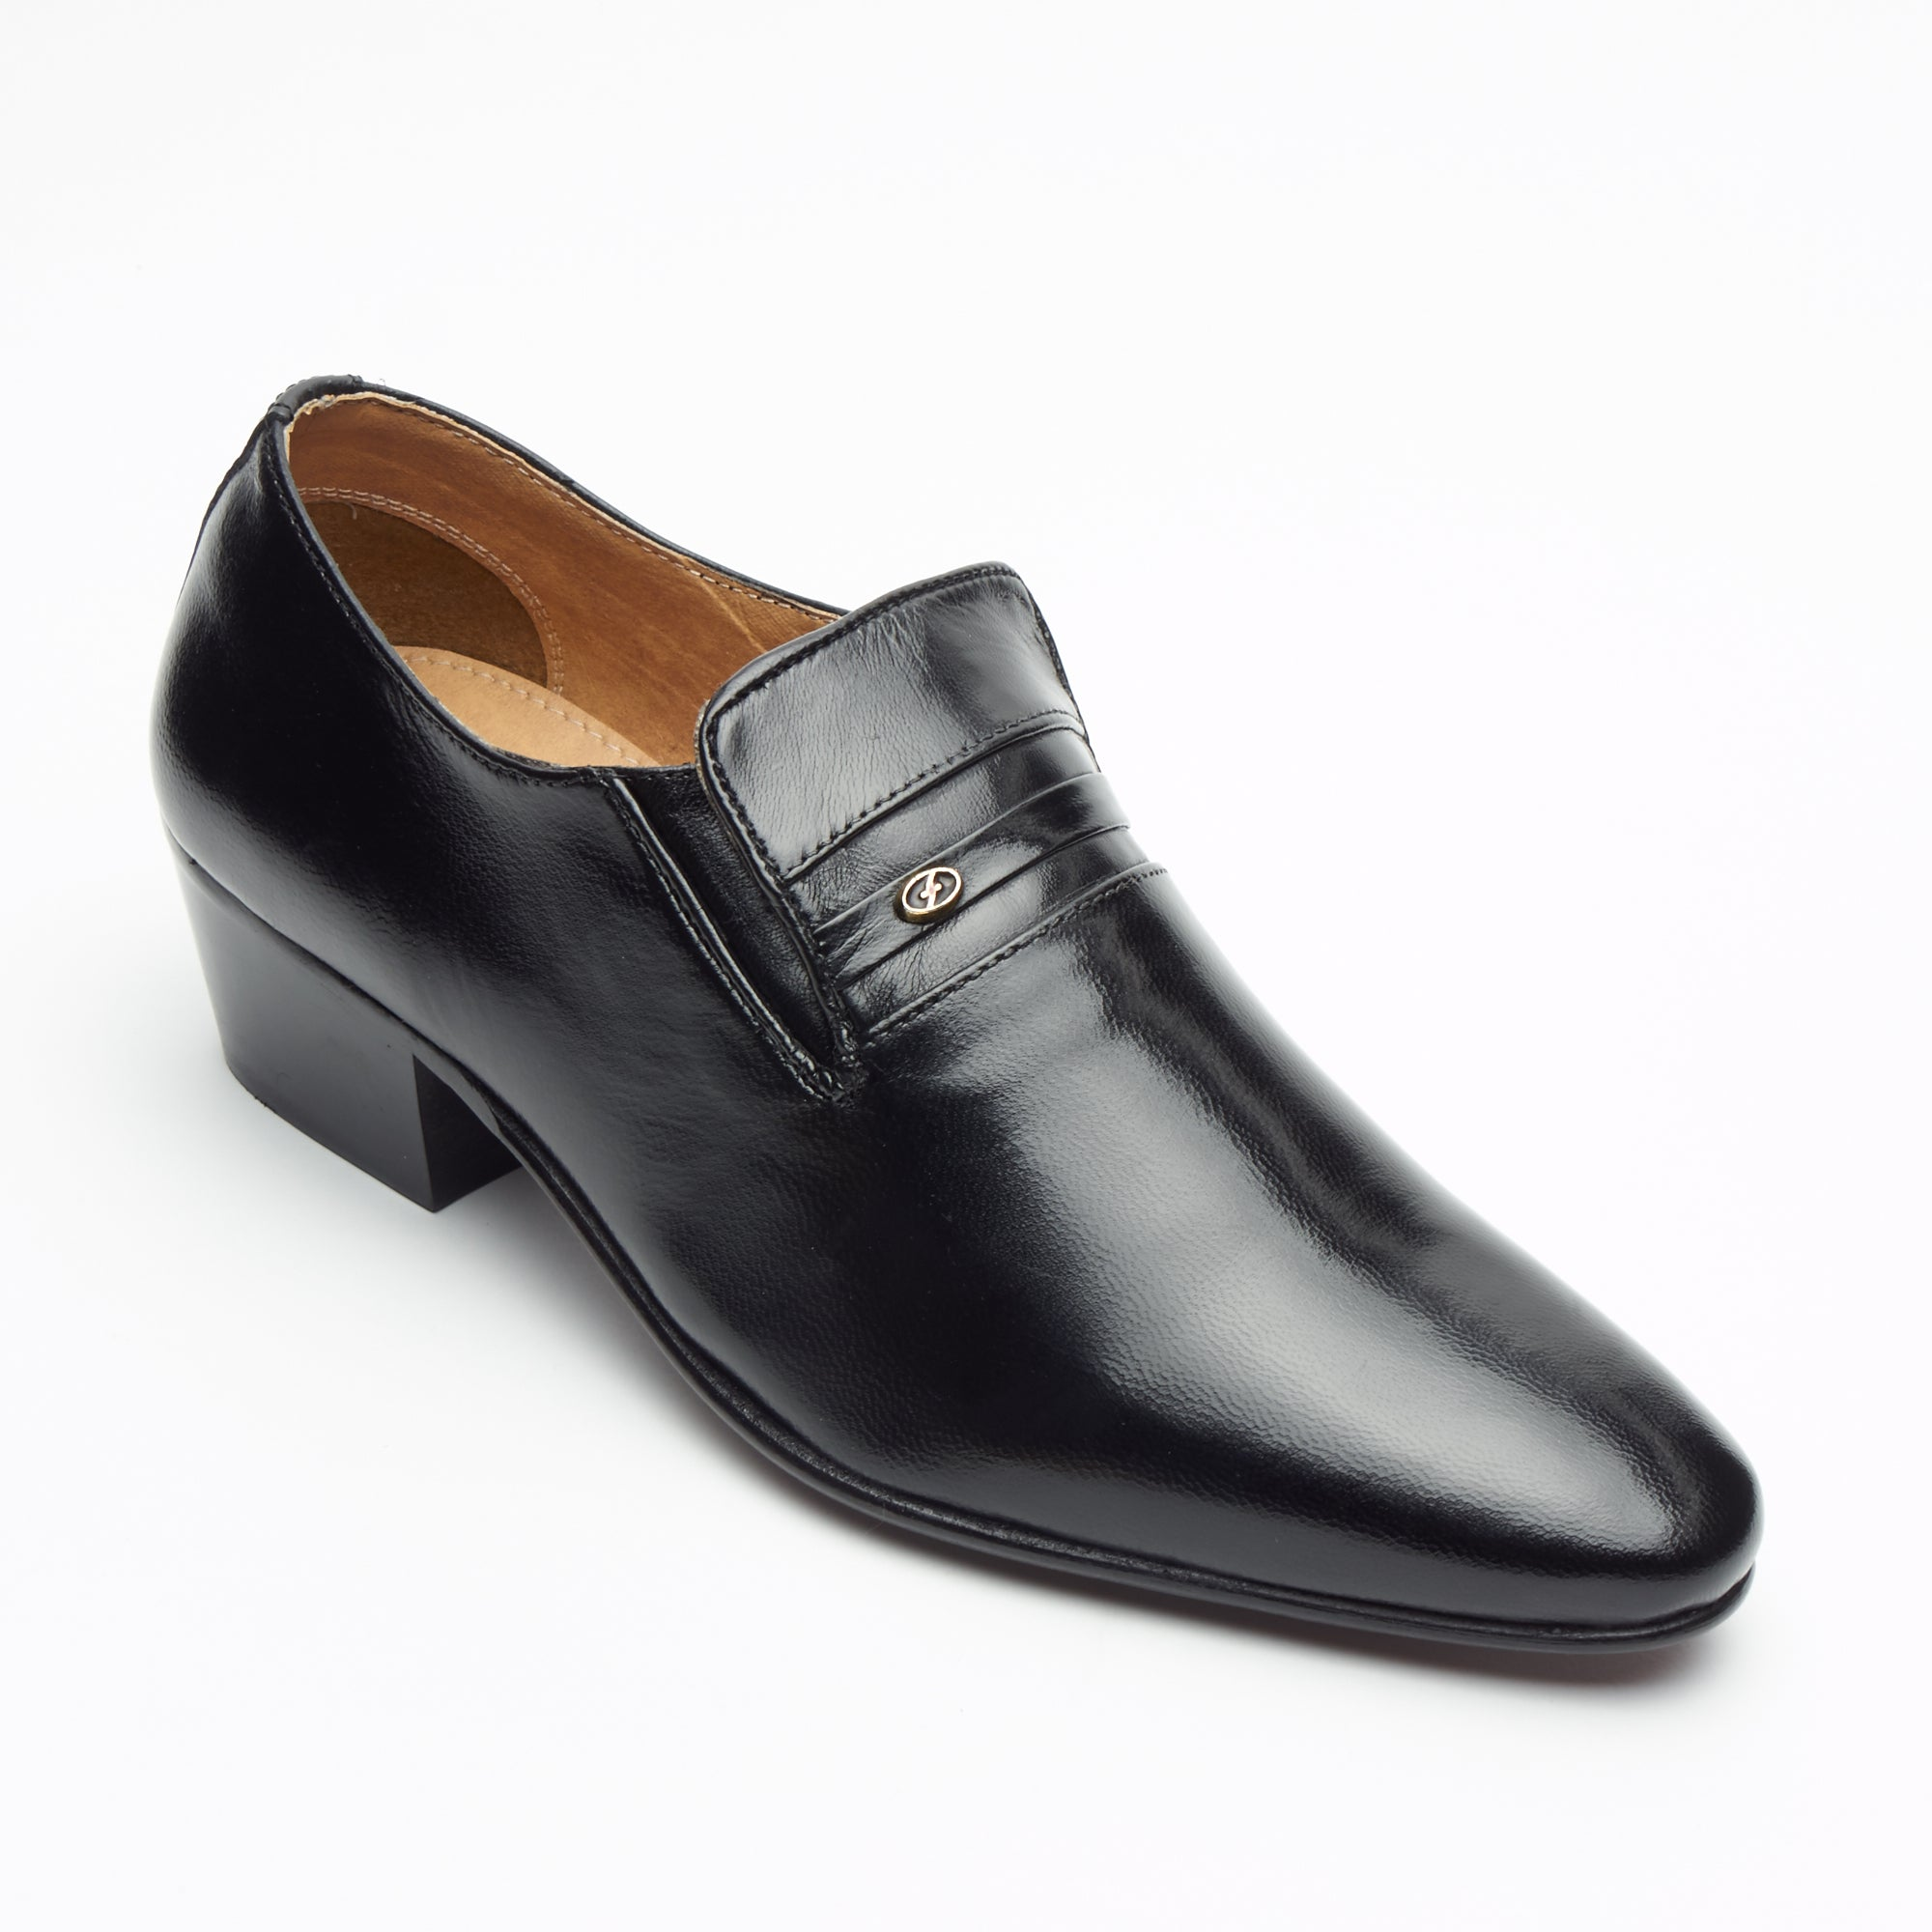 Mens Cuban Heel Leather Shoes - 29779 Black